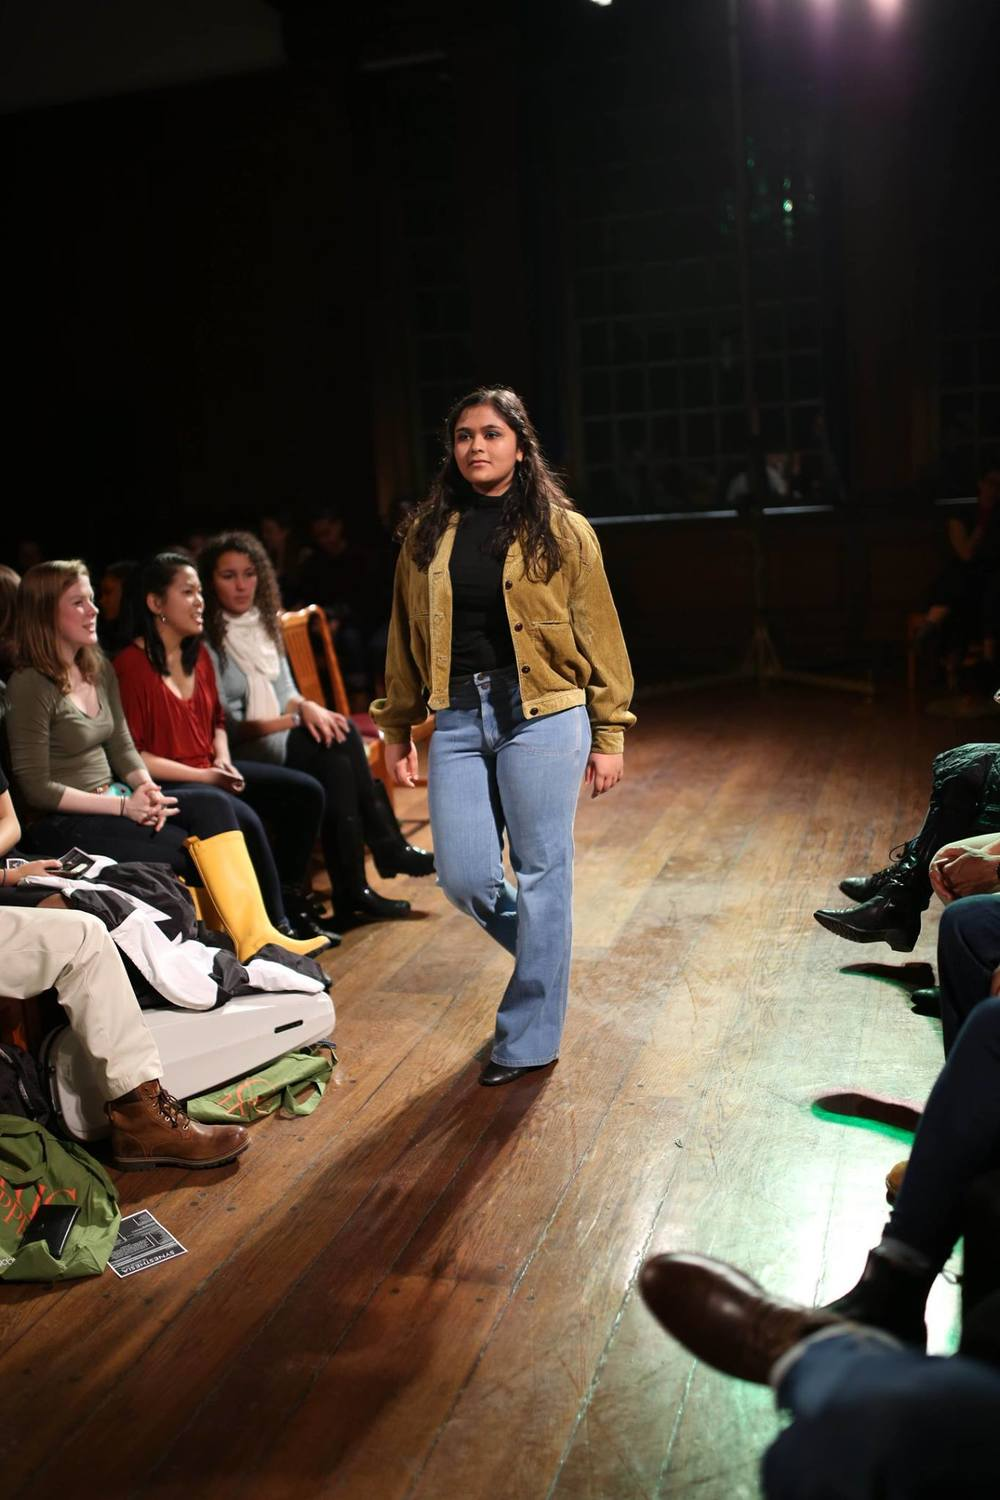 yale_Y_fashion_house_fashion_show_vintanthromodern_20.jpg